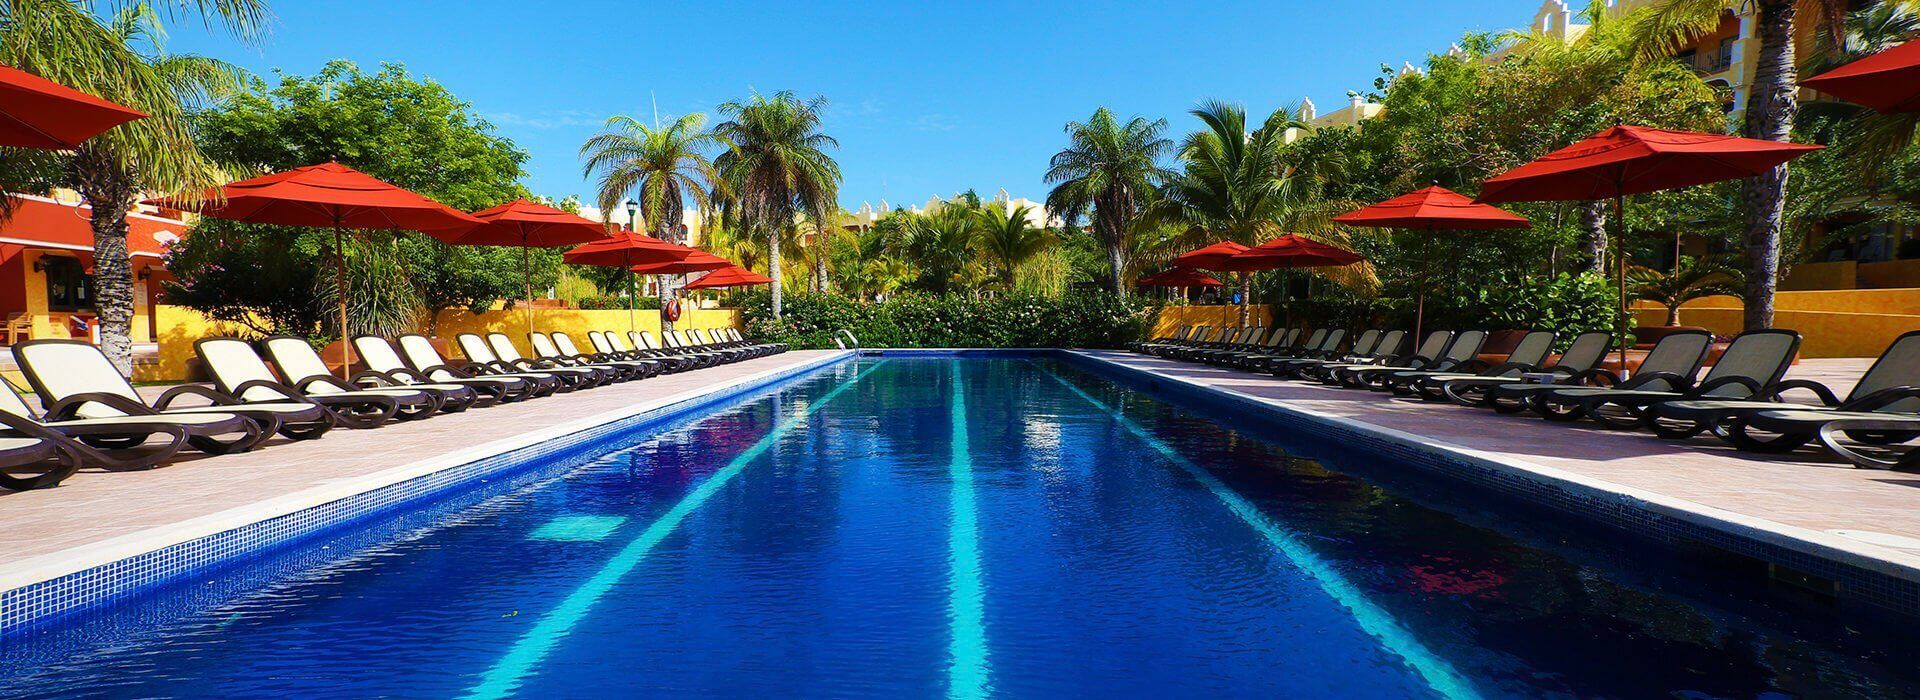 Lap pool in Playa del Carmen Resort